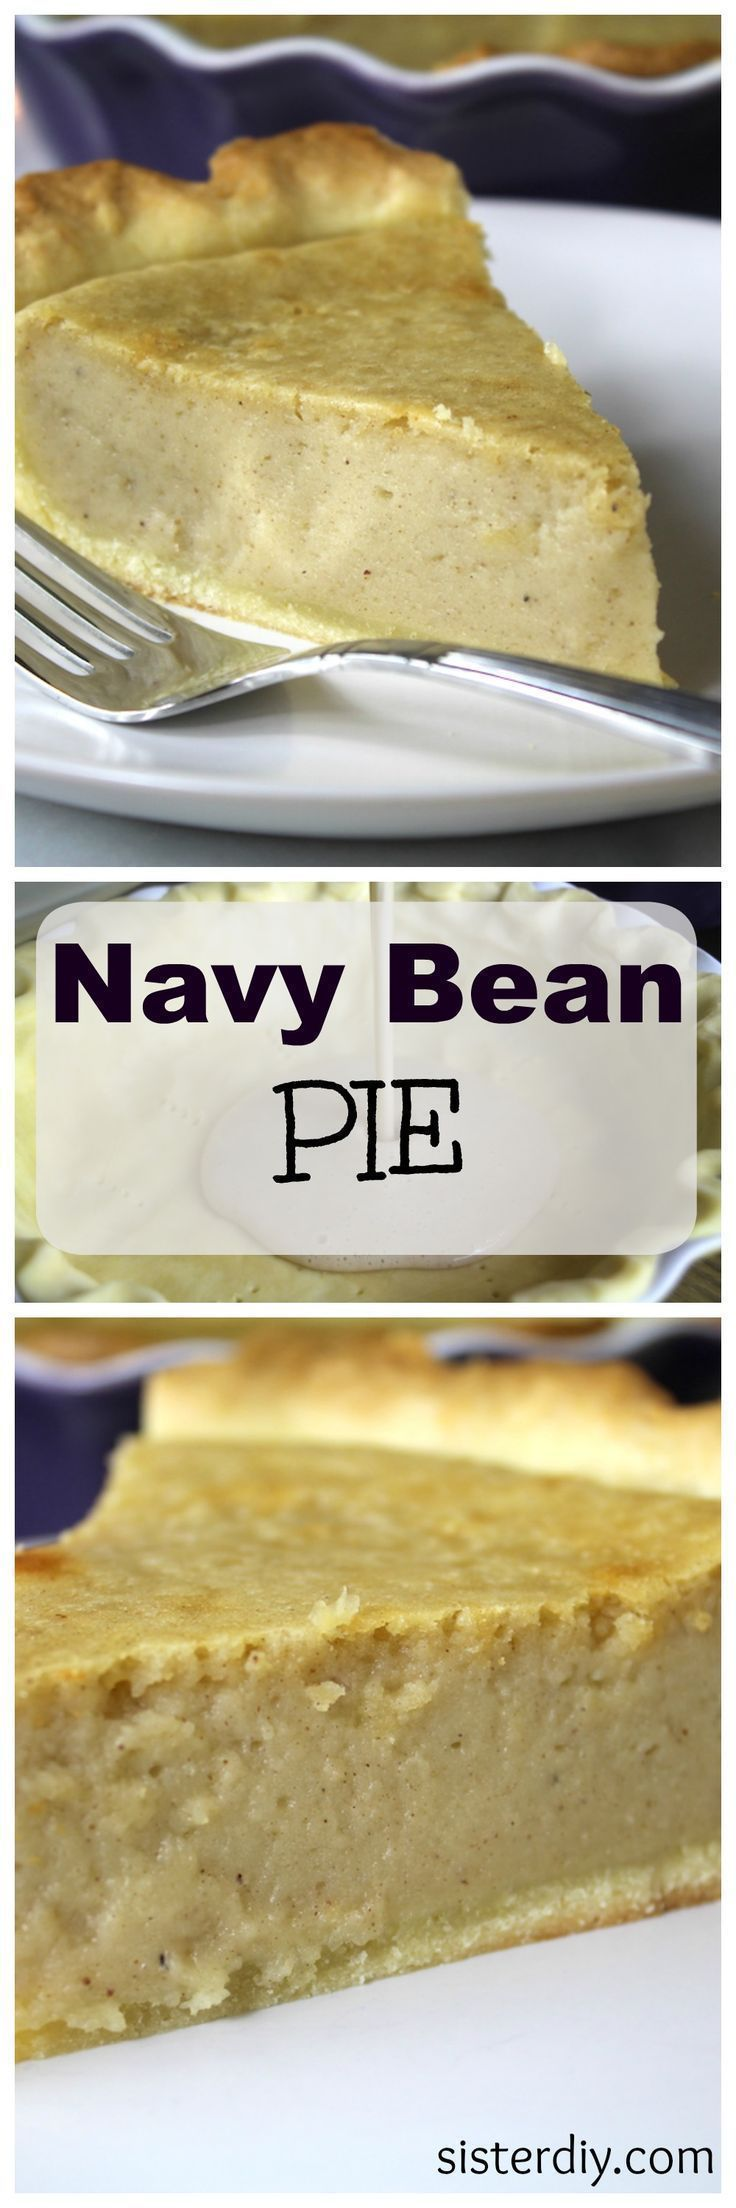 Navy Bean Pie is a sweet custard pie in which the filling consists of pureed navy beans, sugar, butter, eggs, milk, and spices. Simple and unexpectedly delicious!